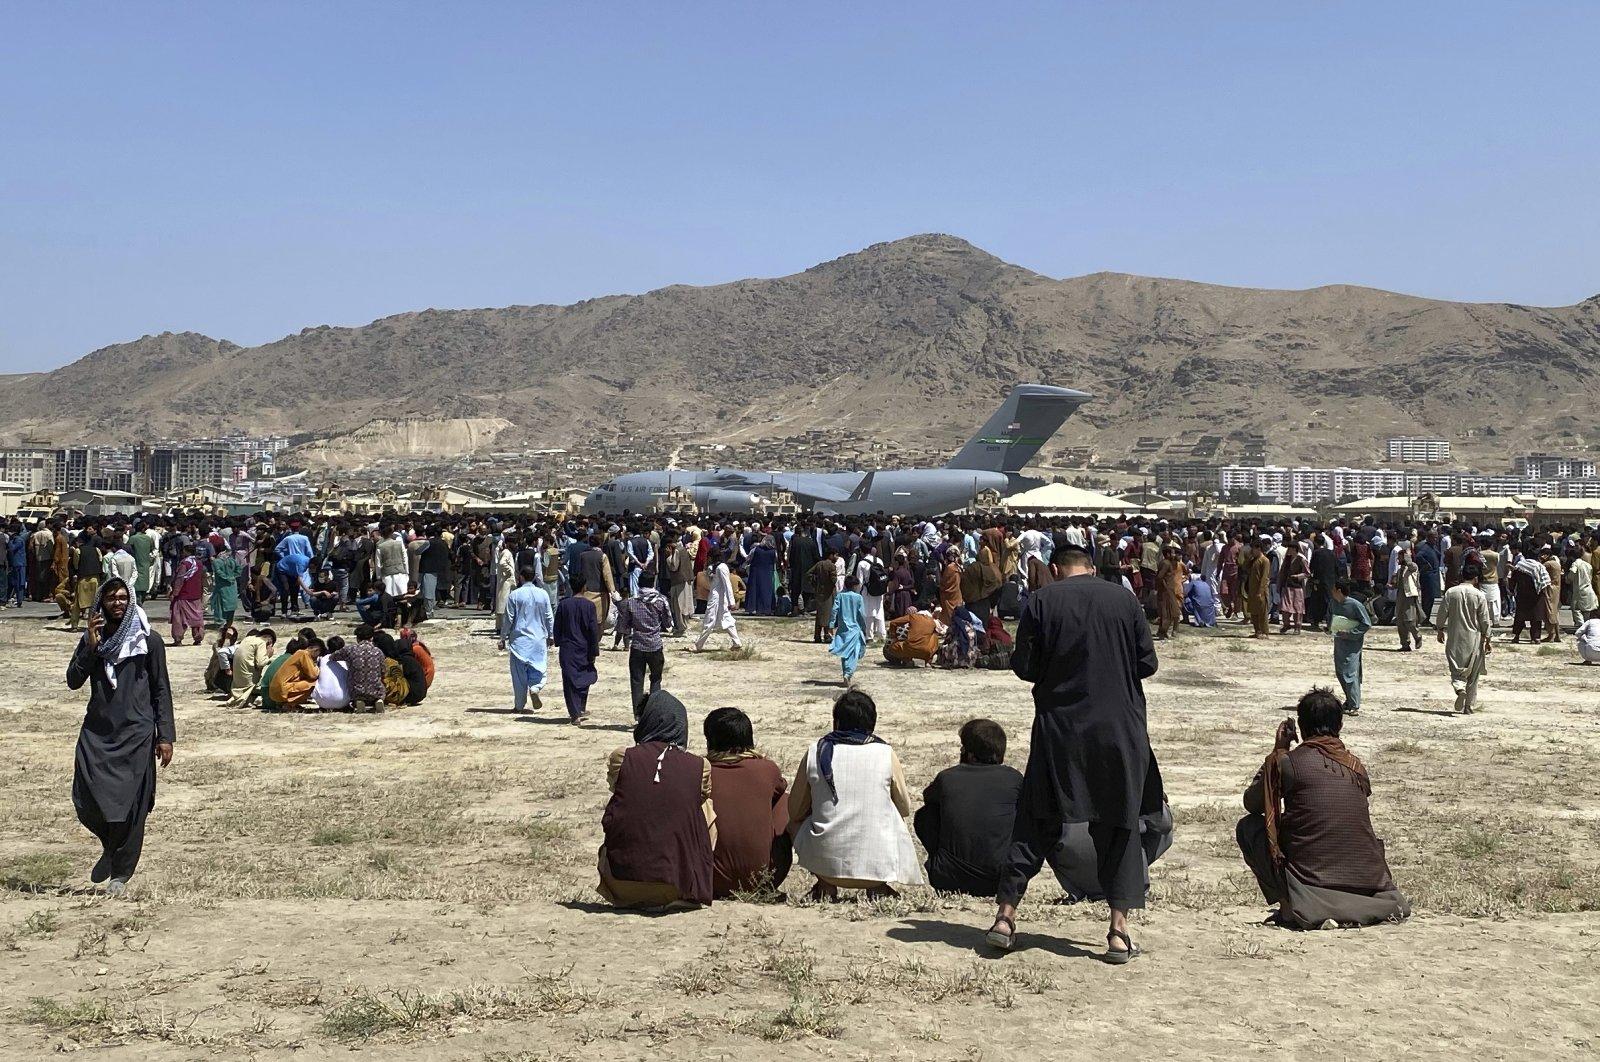 Hundreds of people gather near a U.S. Air Force C-17 transport plane at a perimeter at the international airport in Kabul, Afghanistan, Monday, Aug. 16, 2021. (AP Photo)